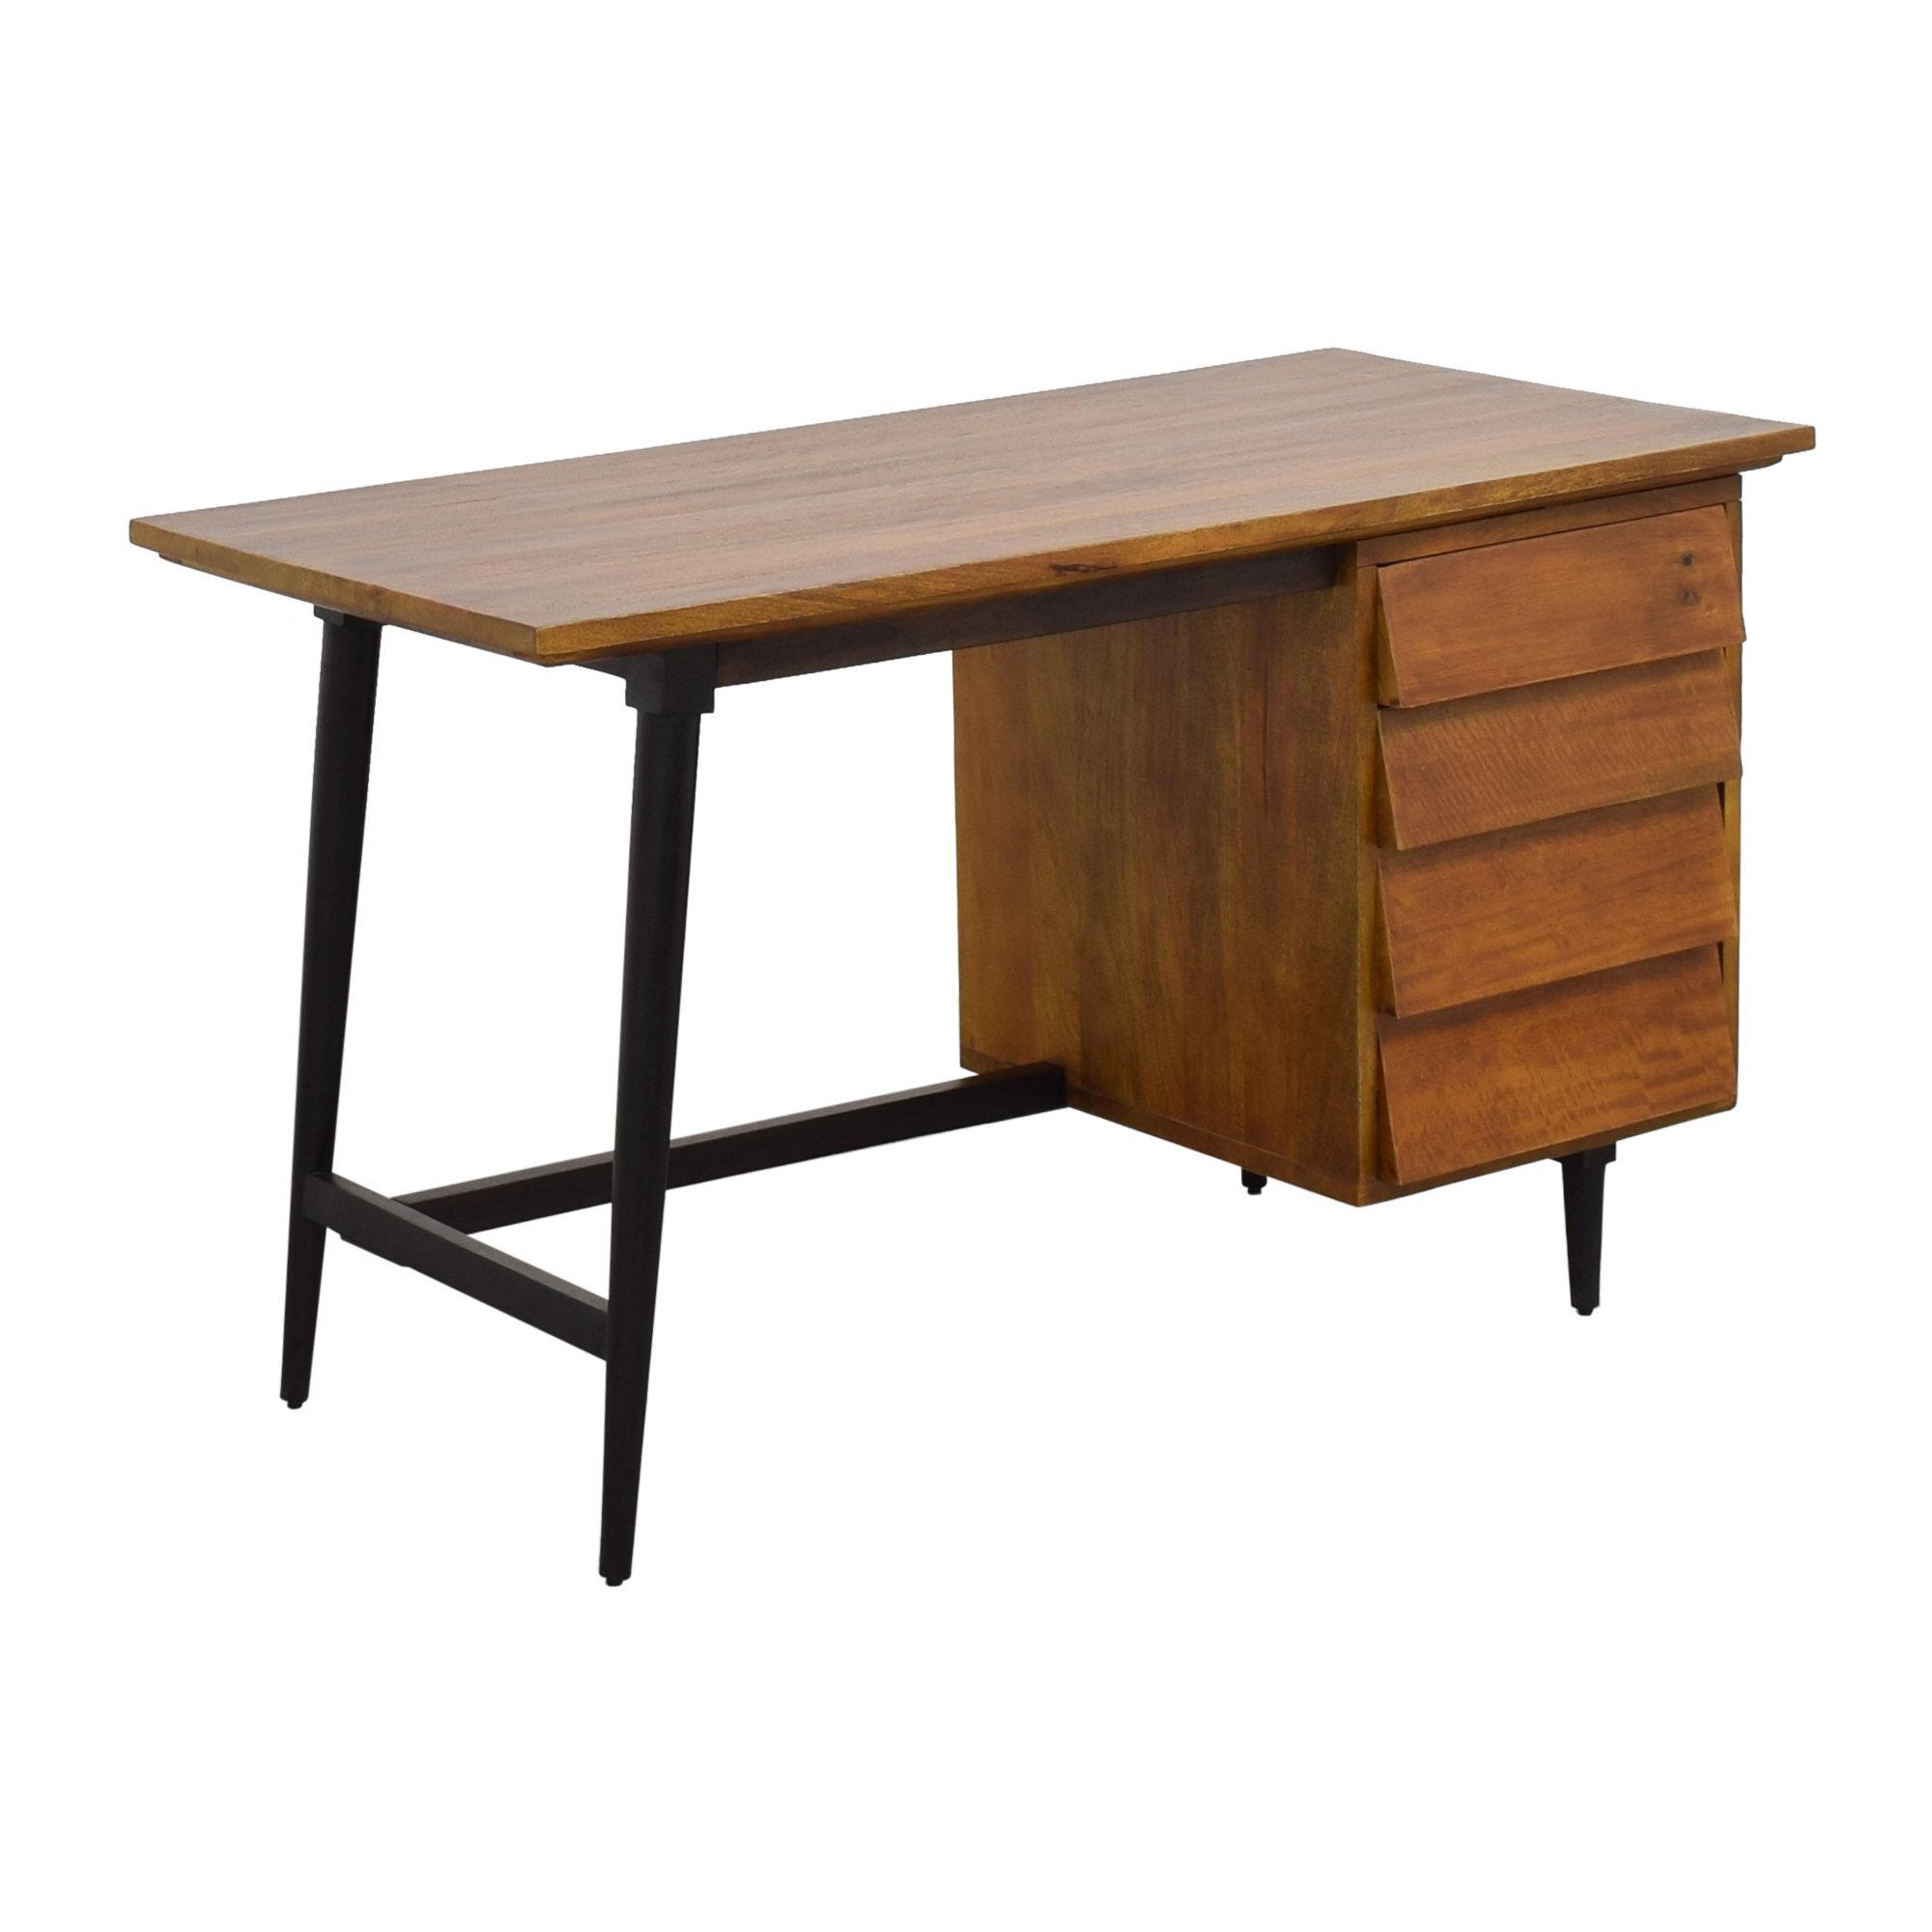 West Elm West Elm Lars Mid-Century Desk on sale